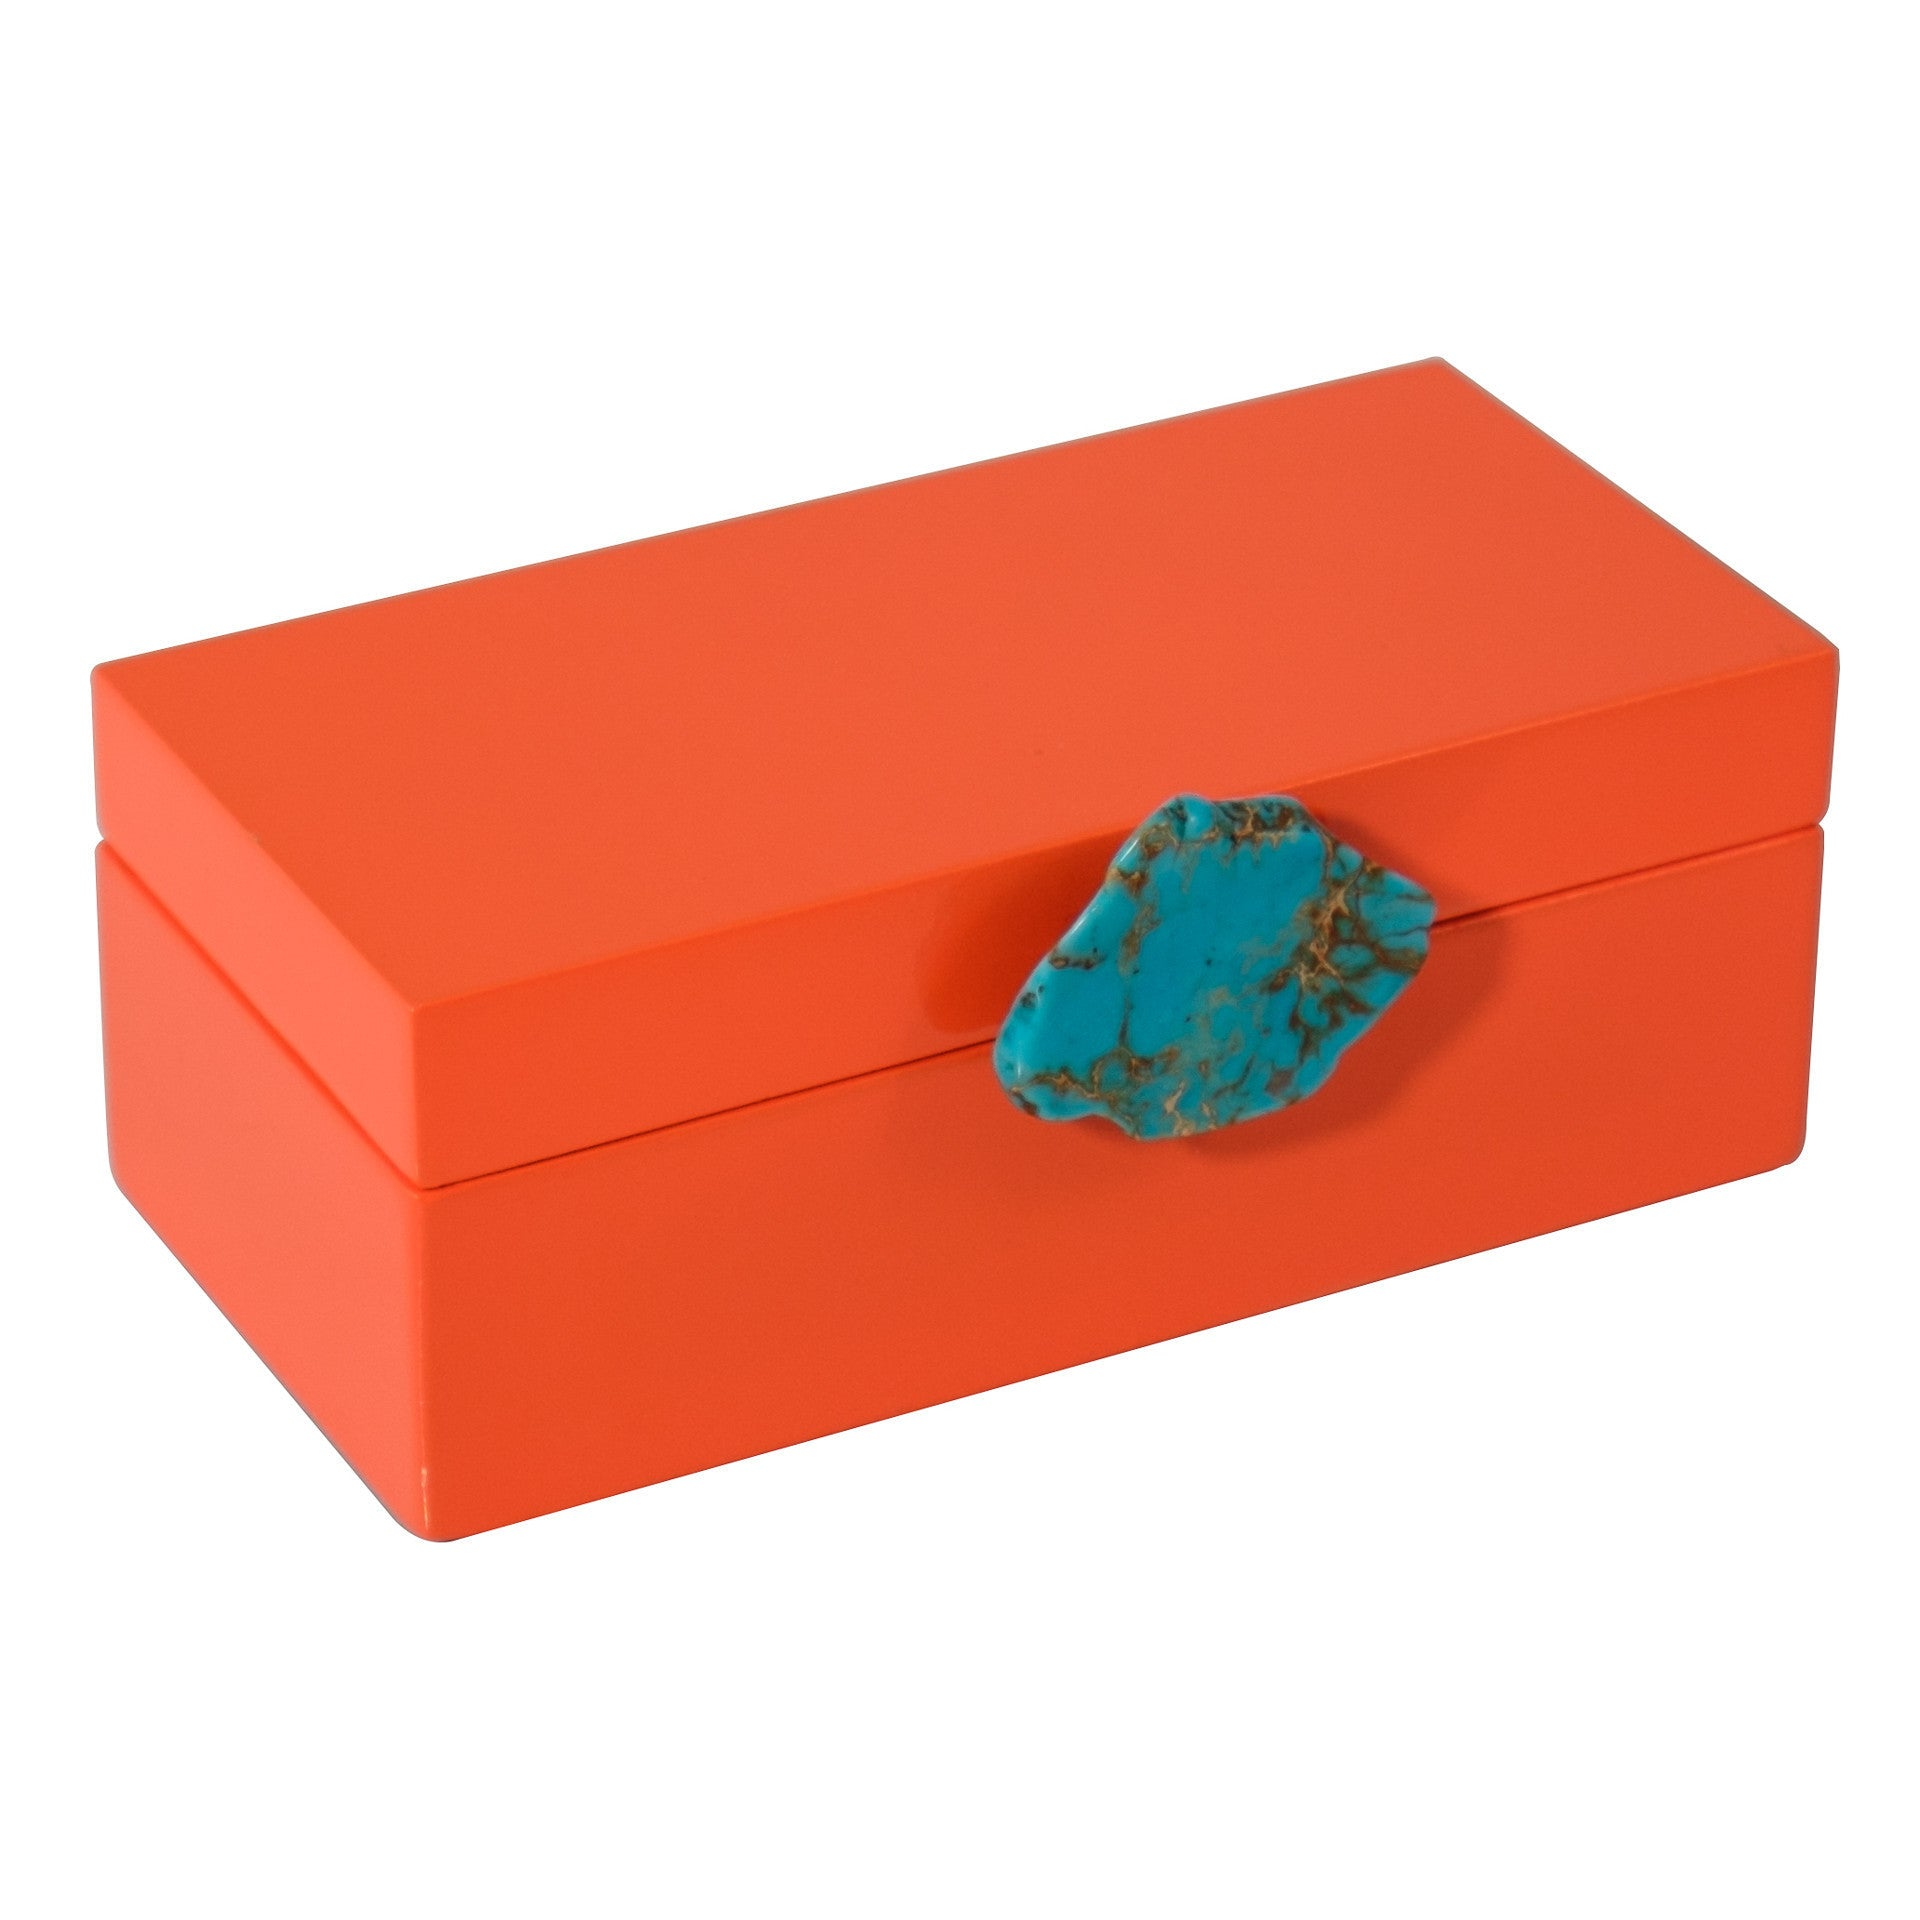 Medium Orange Lacquer Box with Turquoise Jasper Knob